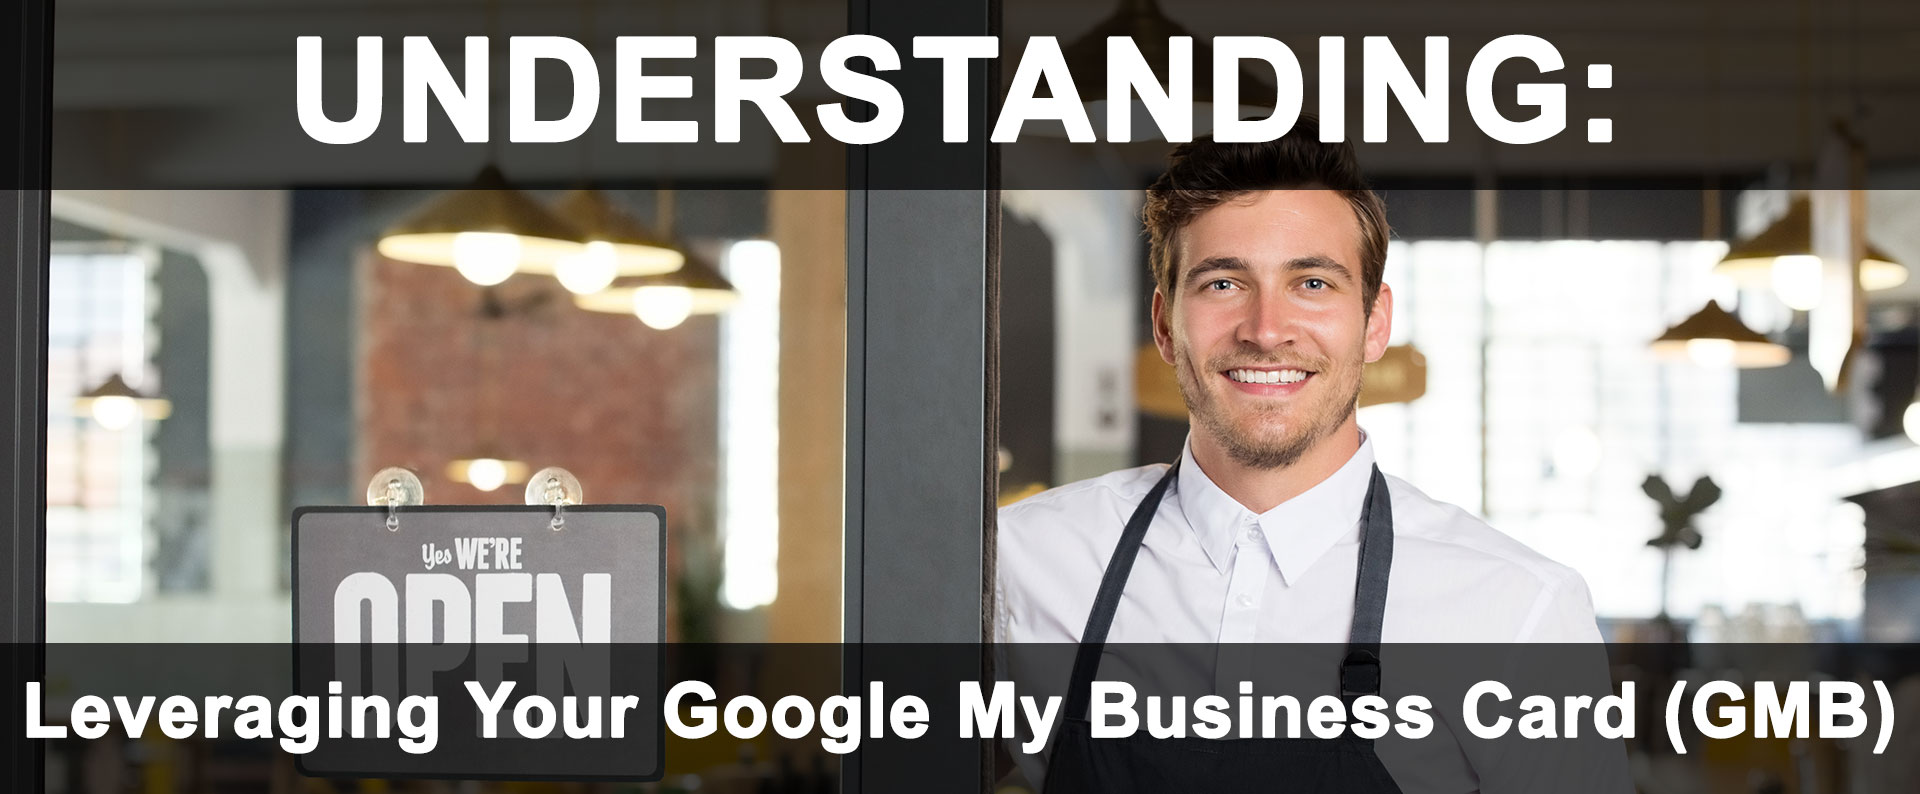 Leveraging Your Google My Business Card (GMB)